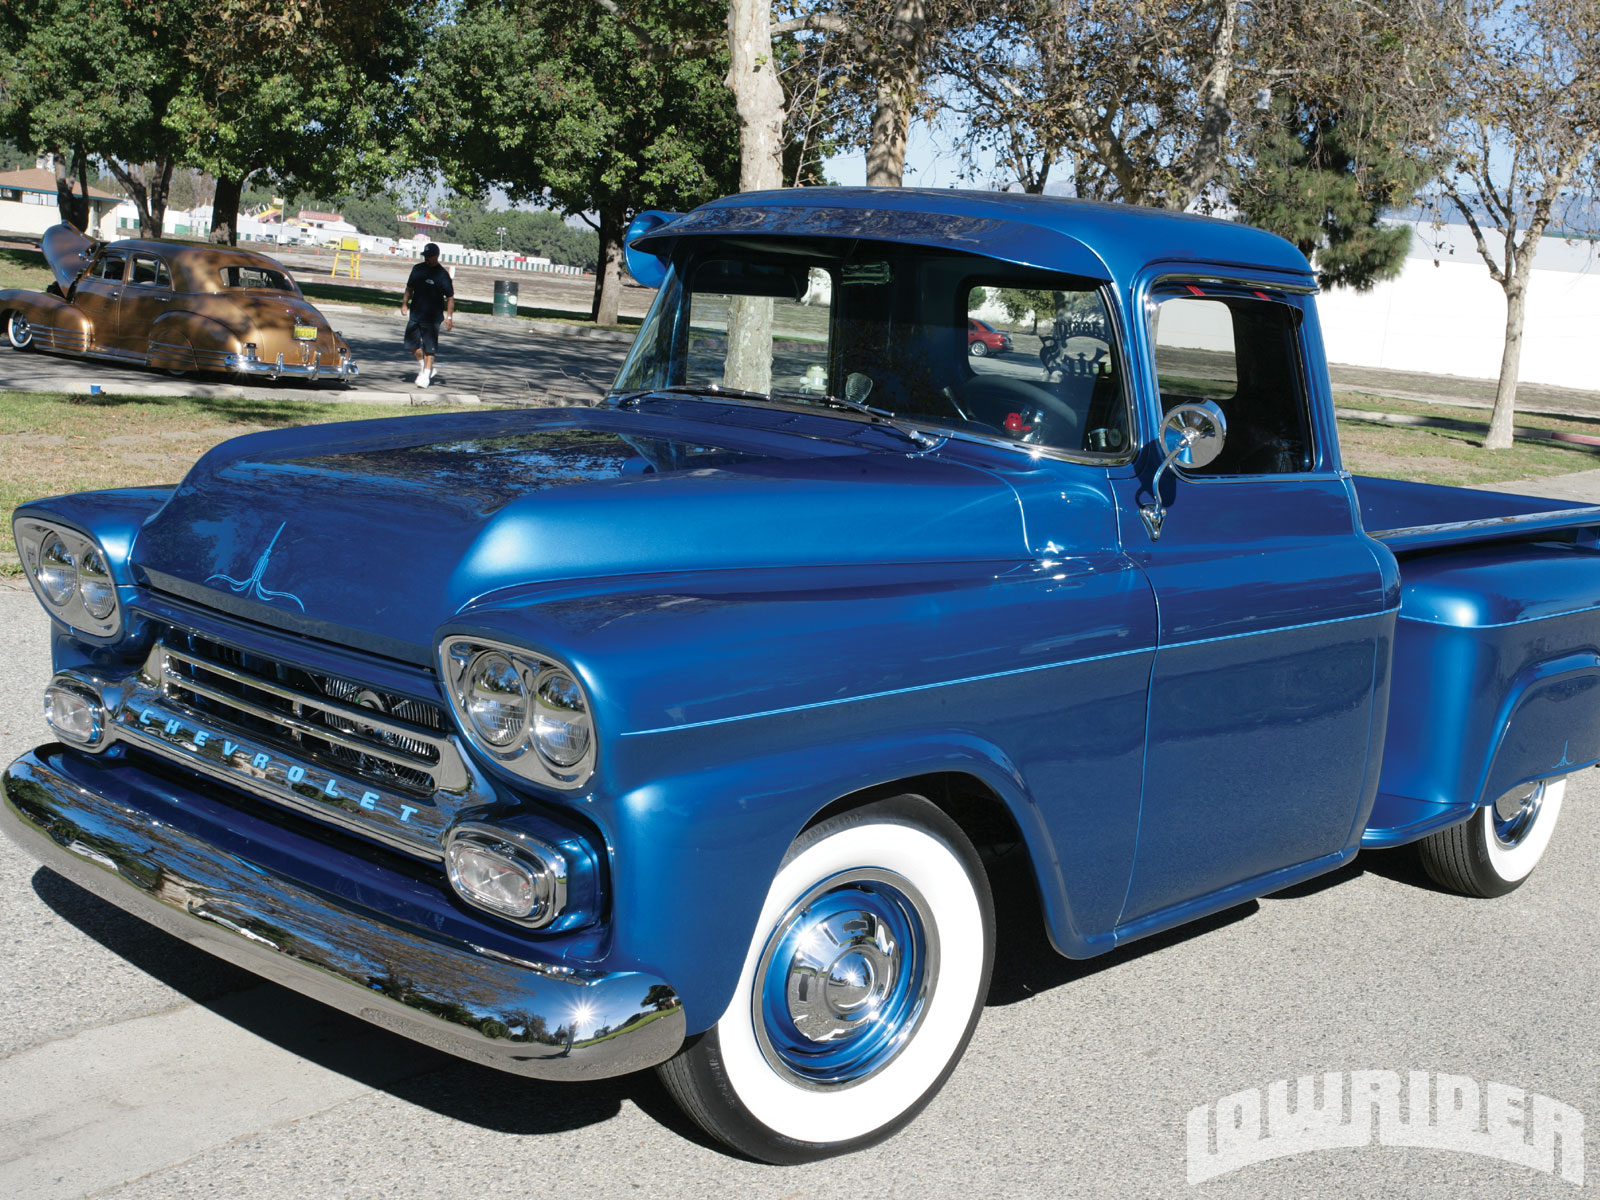 Lowrider Car Parts And Accessories